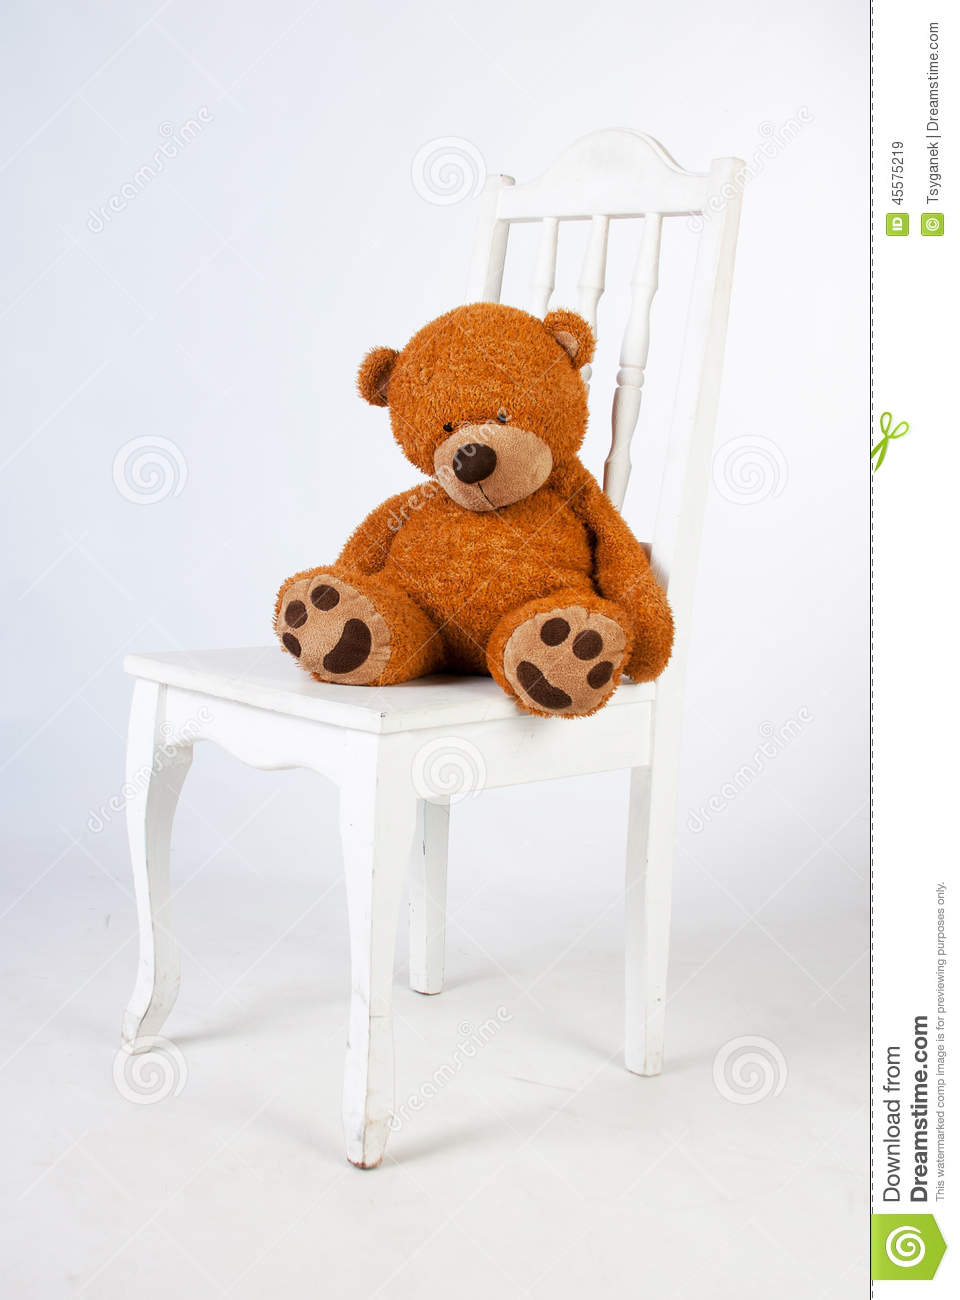 sad teddy bear sits on a chair stock image image 45575219. Black Bedroom Furniture Sets. Home Design Ideas